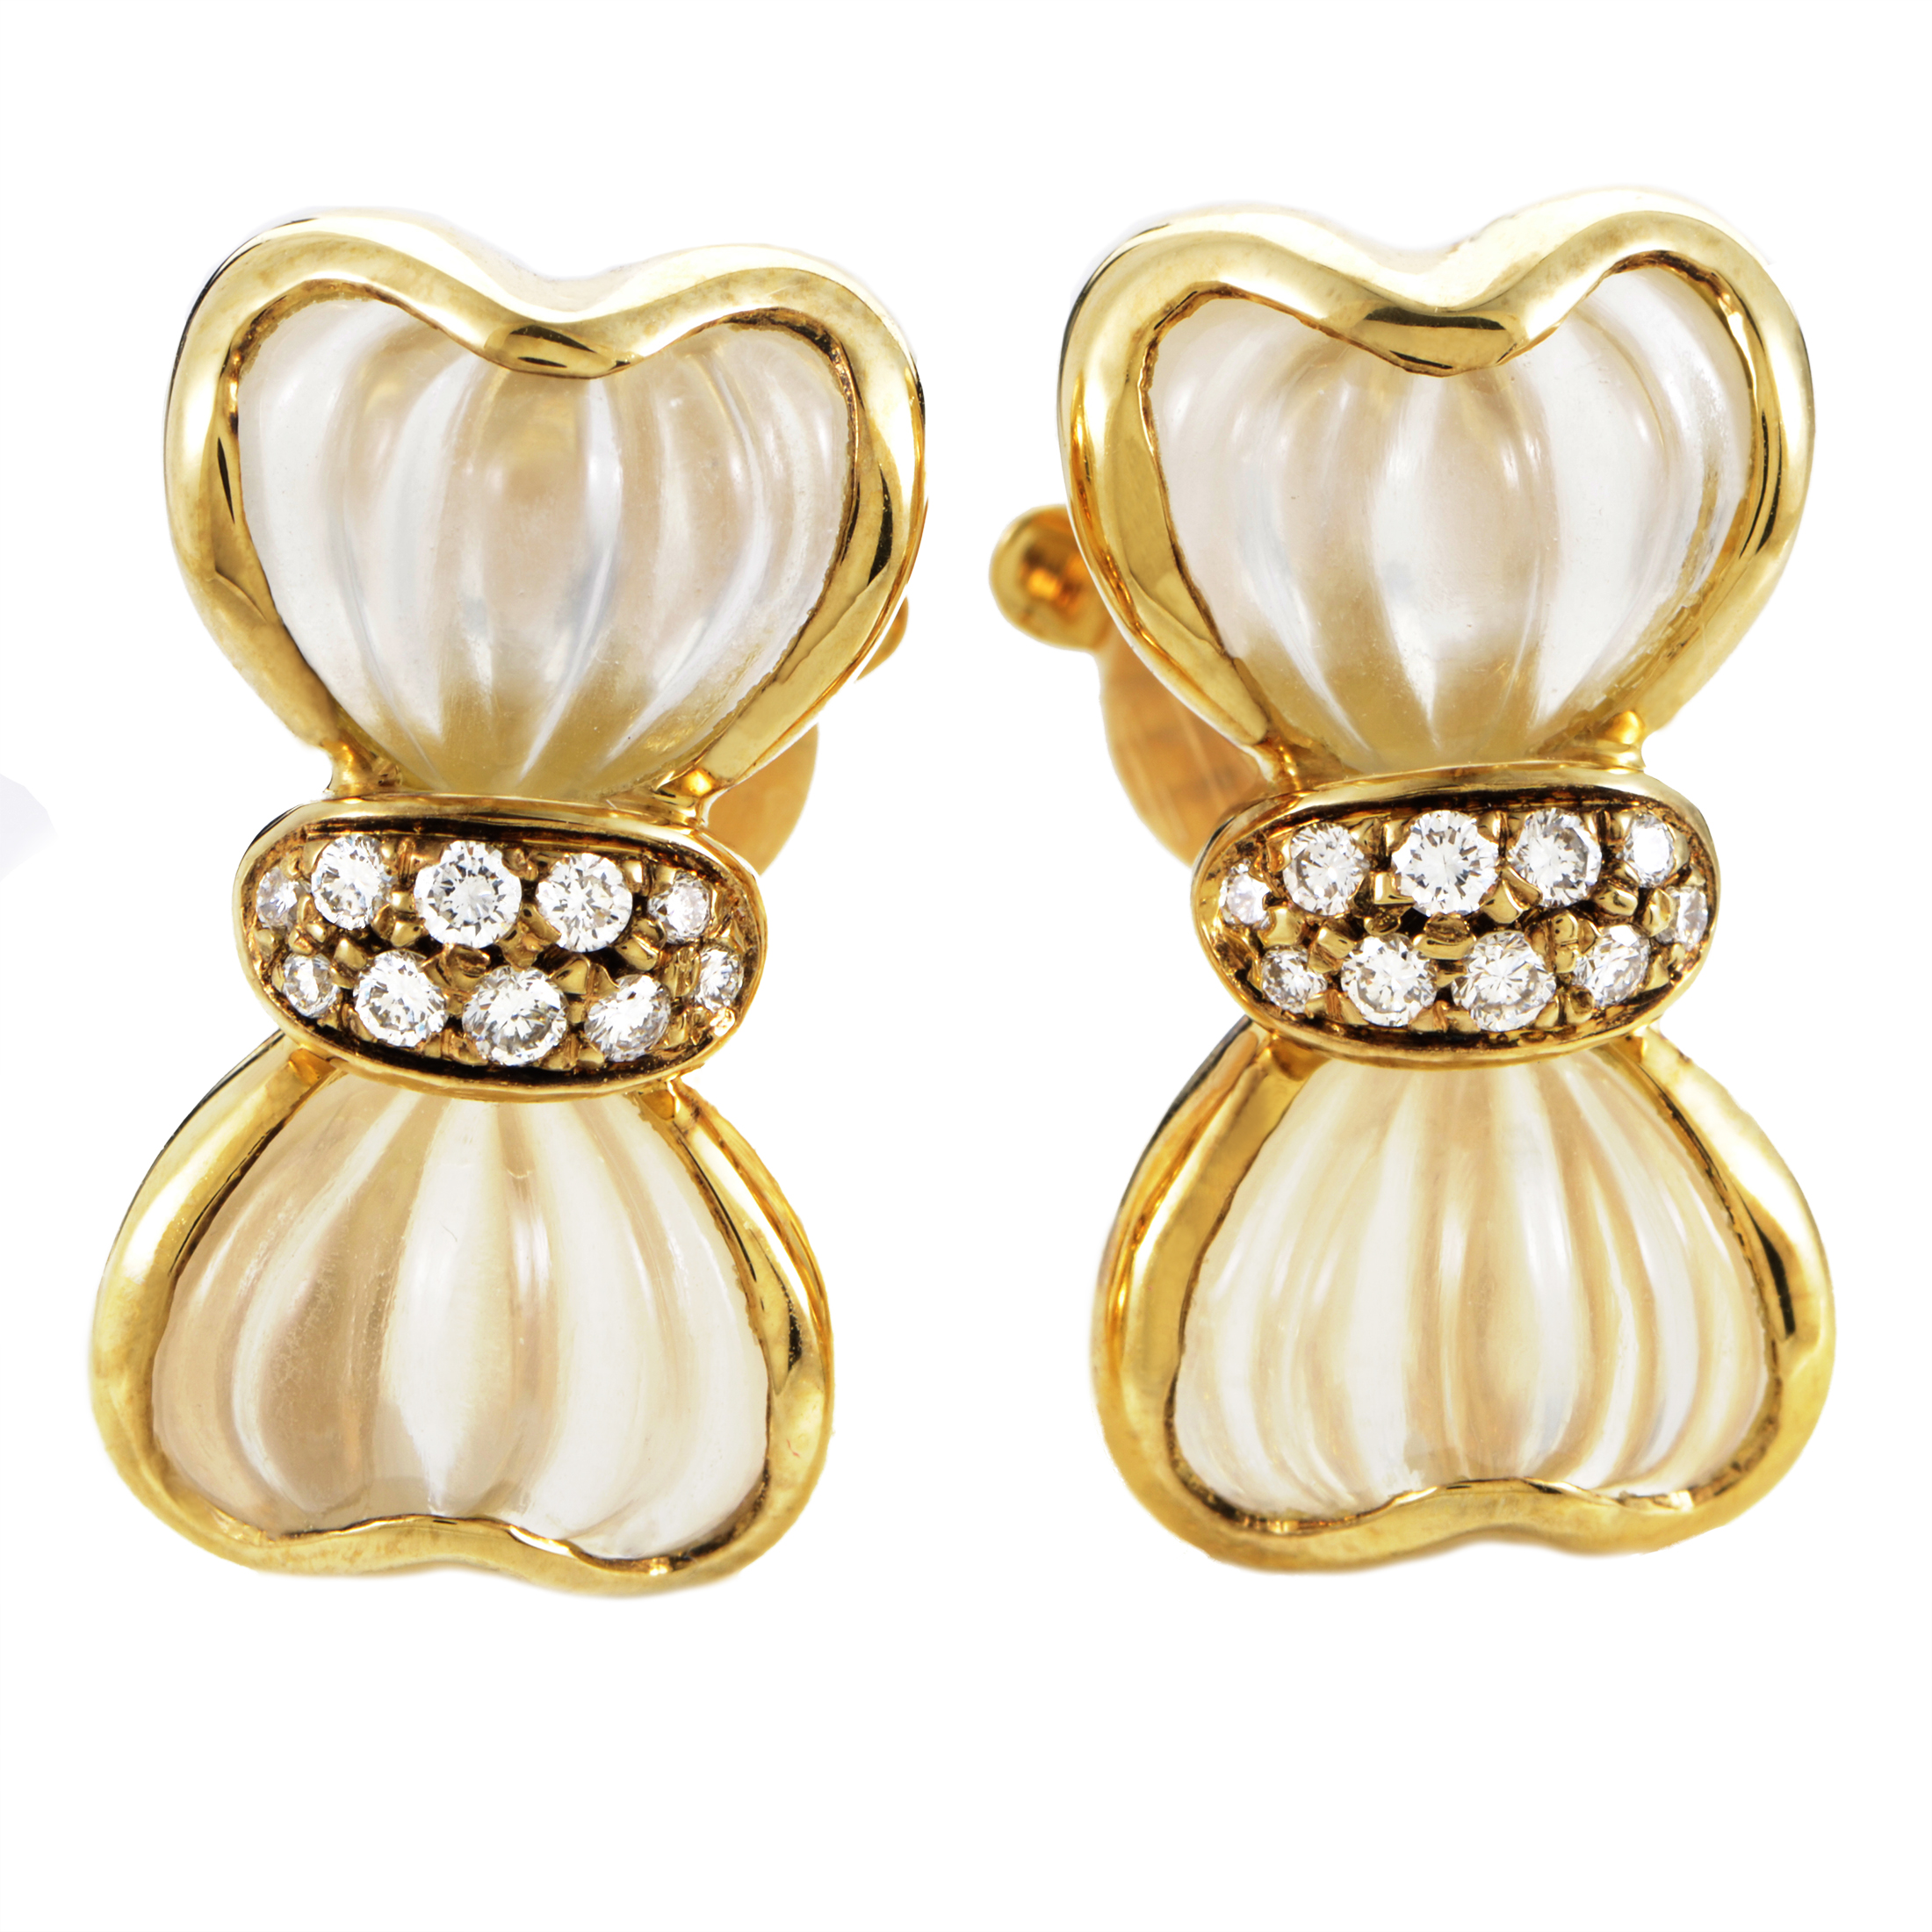 Boucheron Women's 18K Yellow Gold Diamond & Crystal Bow Clip-on Earrings